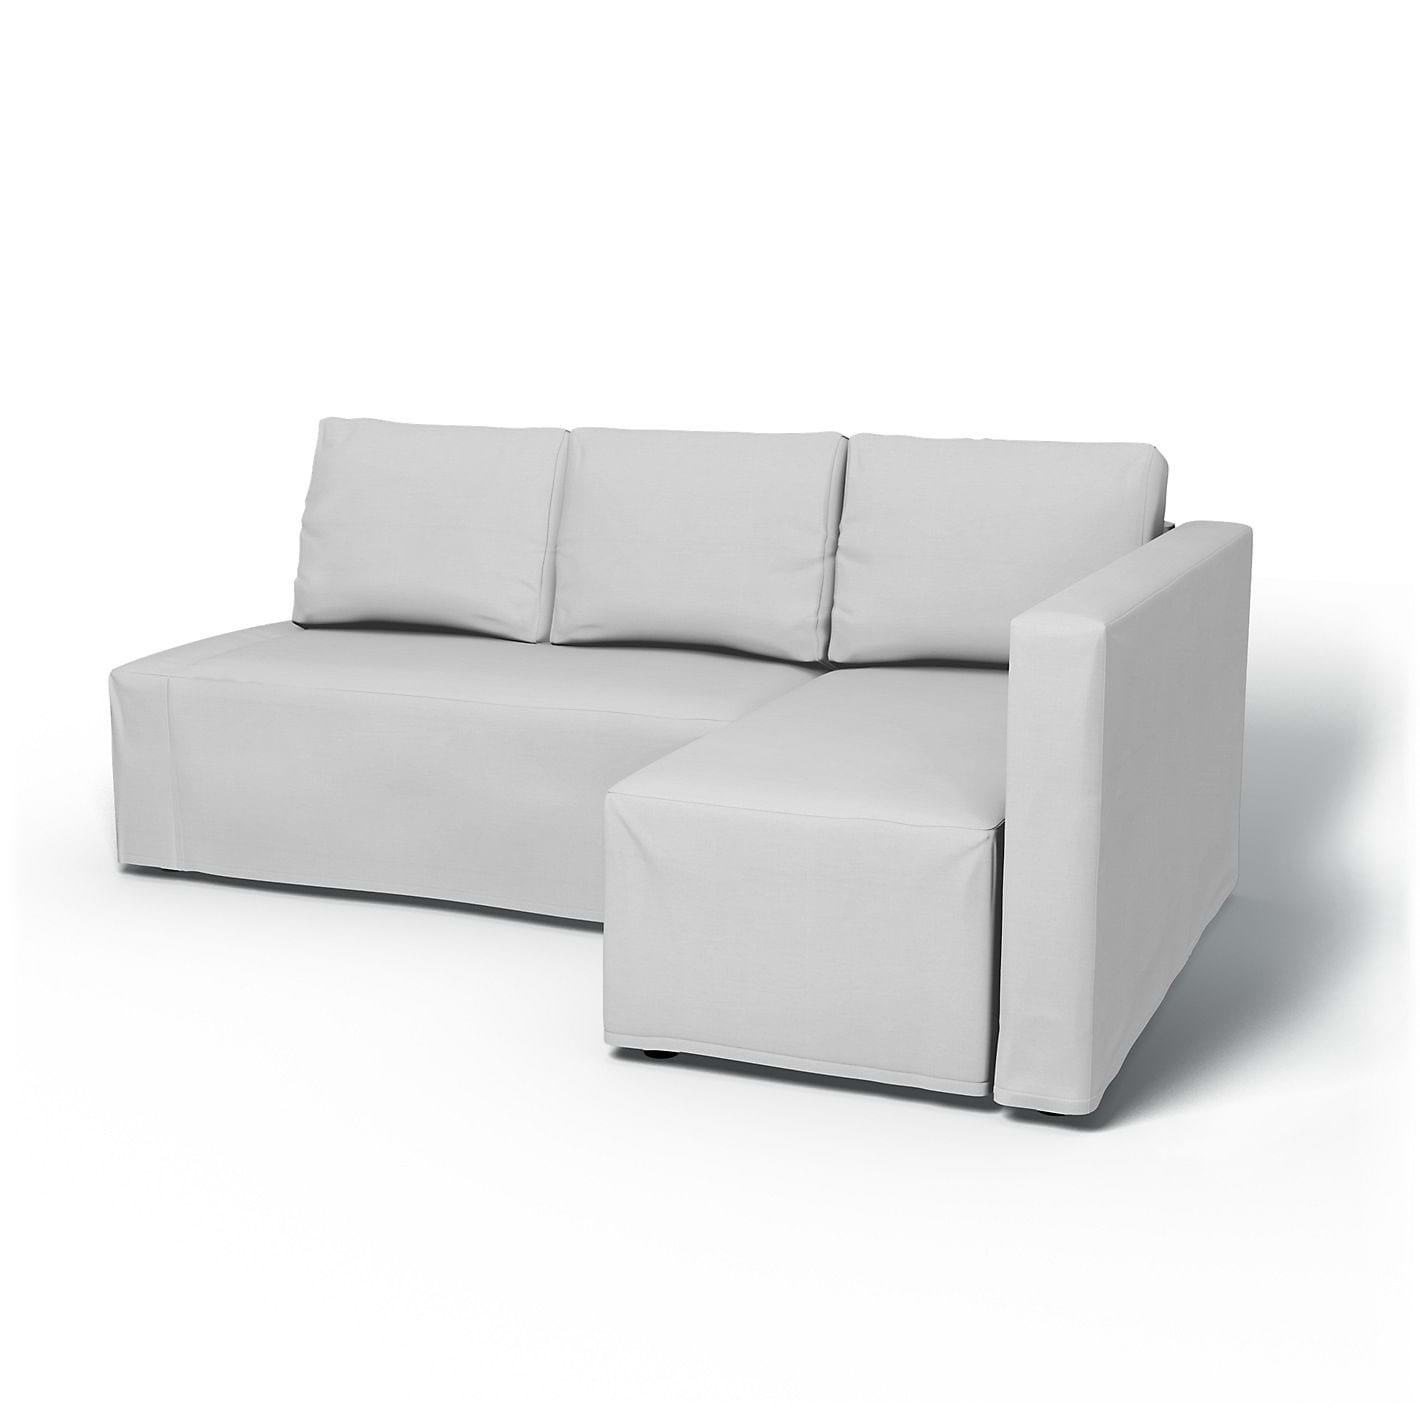 Marvelous Sofa Covers For Ikea Couches Bemz Alphanode Cool Chair Designs And Ideas Alphanodeonline